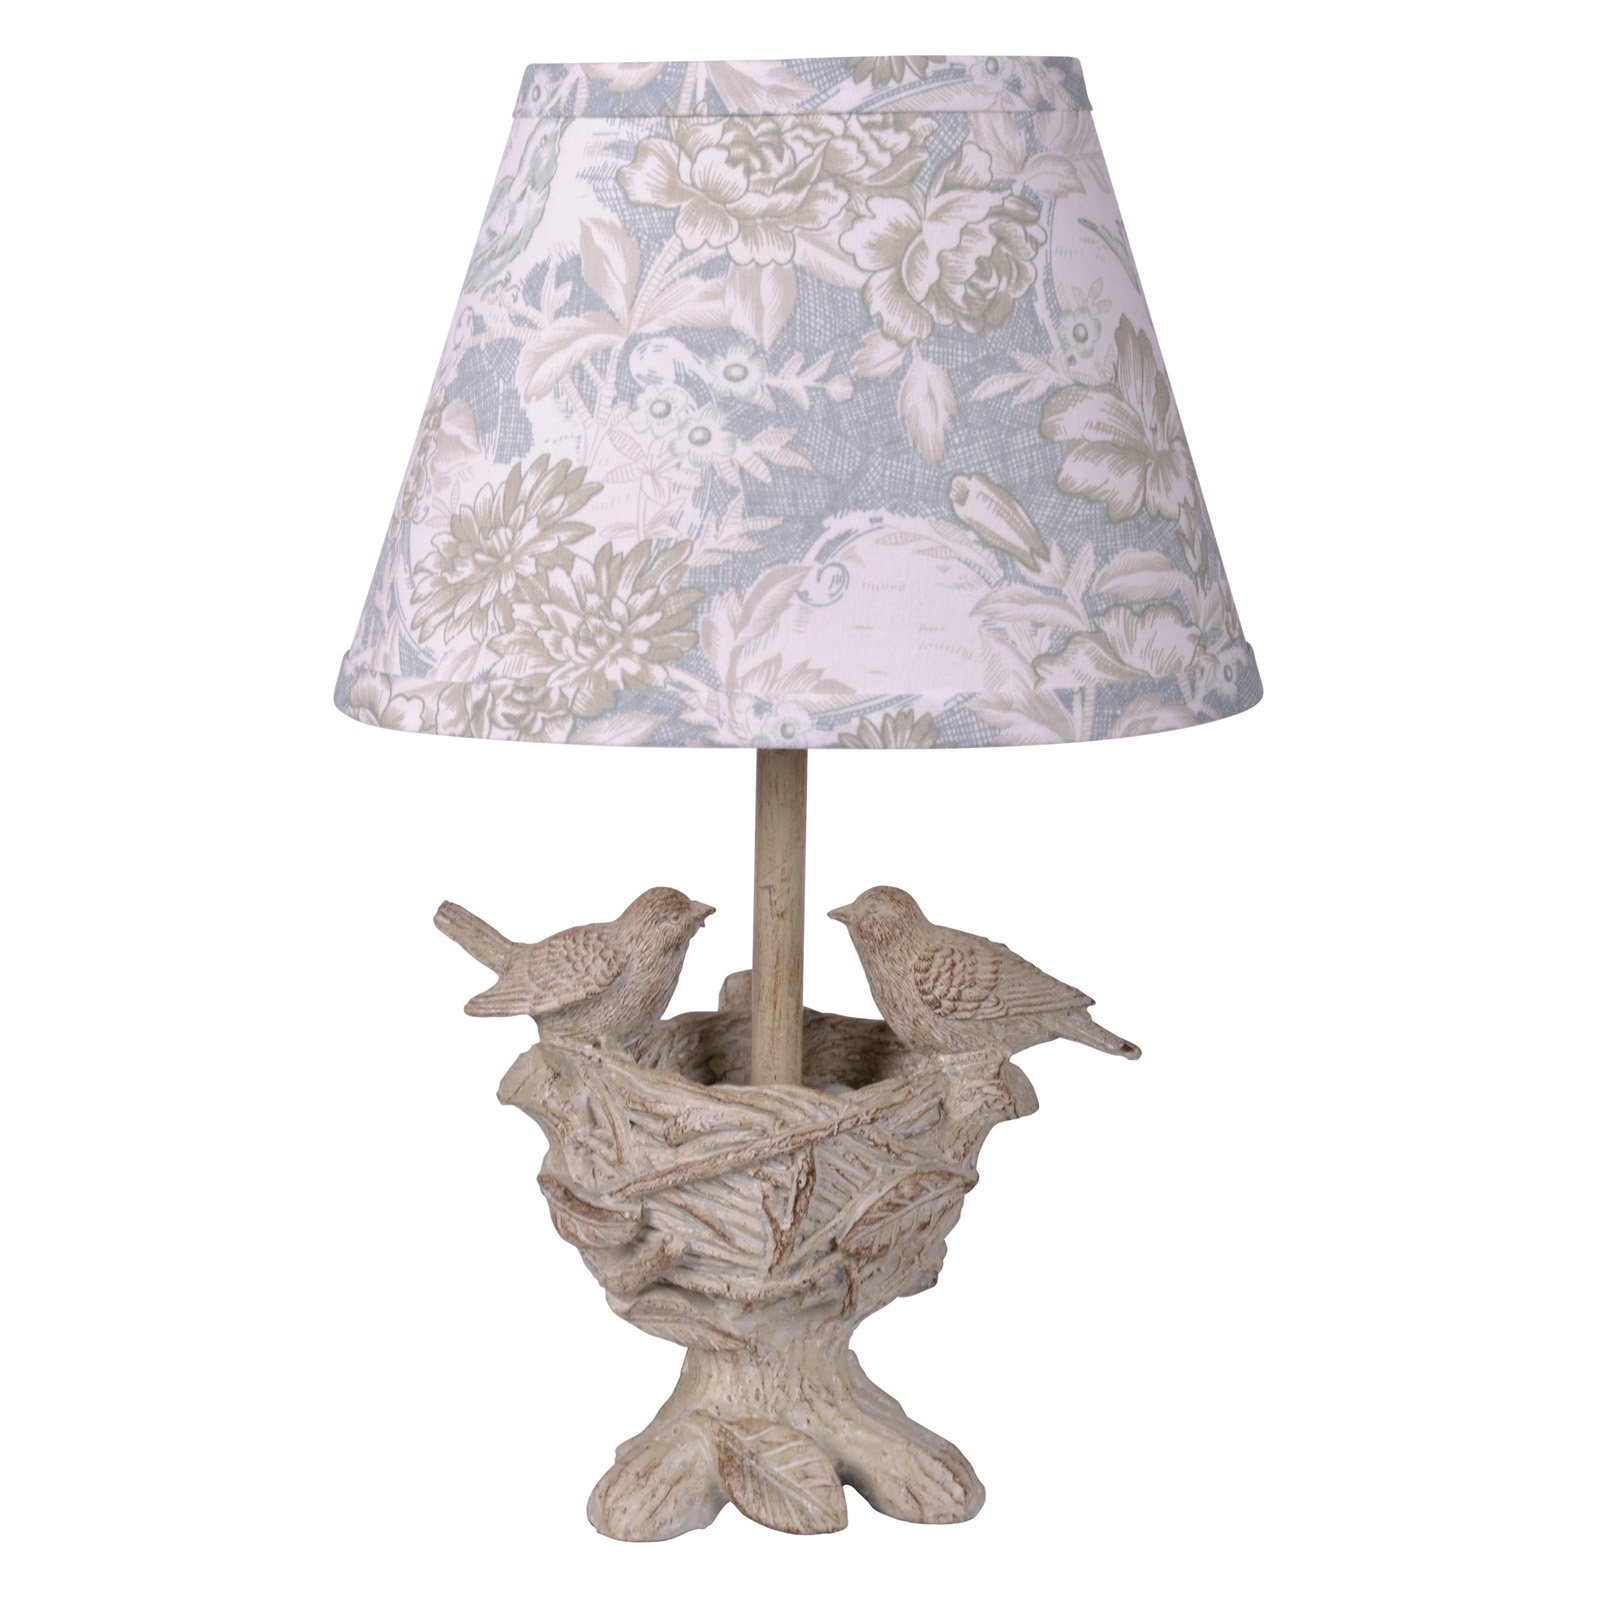 AHS Lighting L1716-UP1 Spring Blessings Accent Lamp